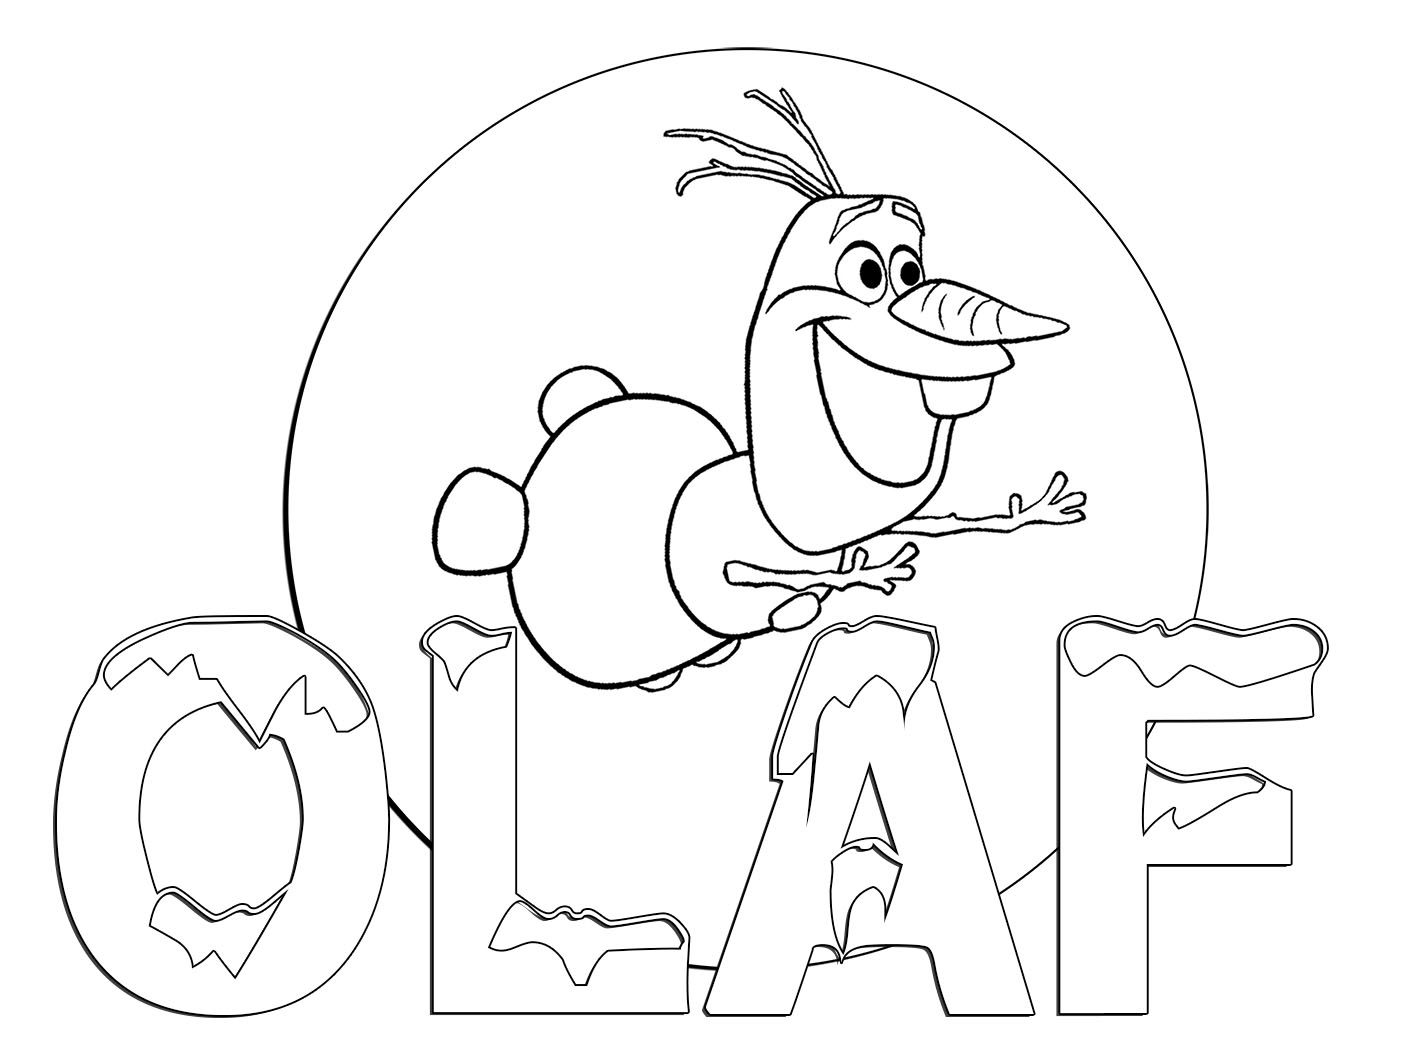 pages free coloring pages for kids printable coloring pages for kids